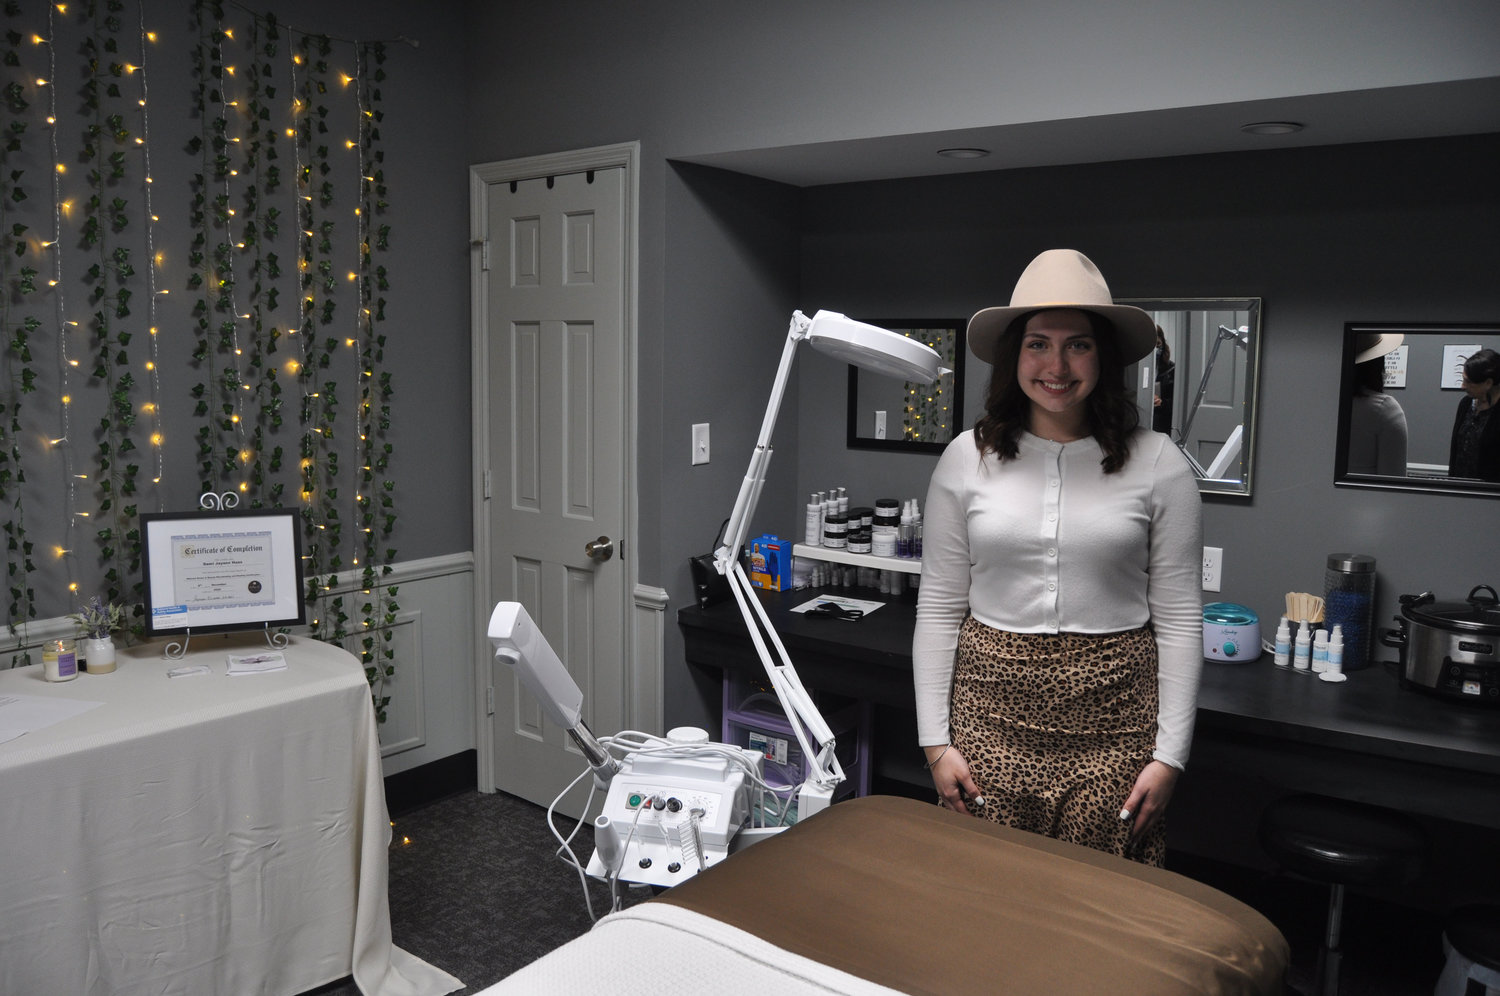 Demi Haas stands in her business djh esthetics and brows in the Weemickle Building in downtown Crawfordsville. Haas shares the space with Lilly Wallace's women's fashion store, Maive's Boutique.